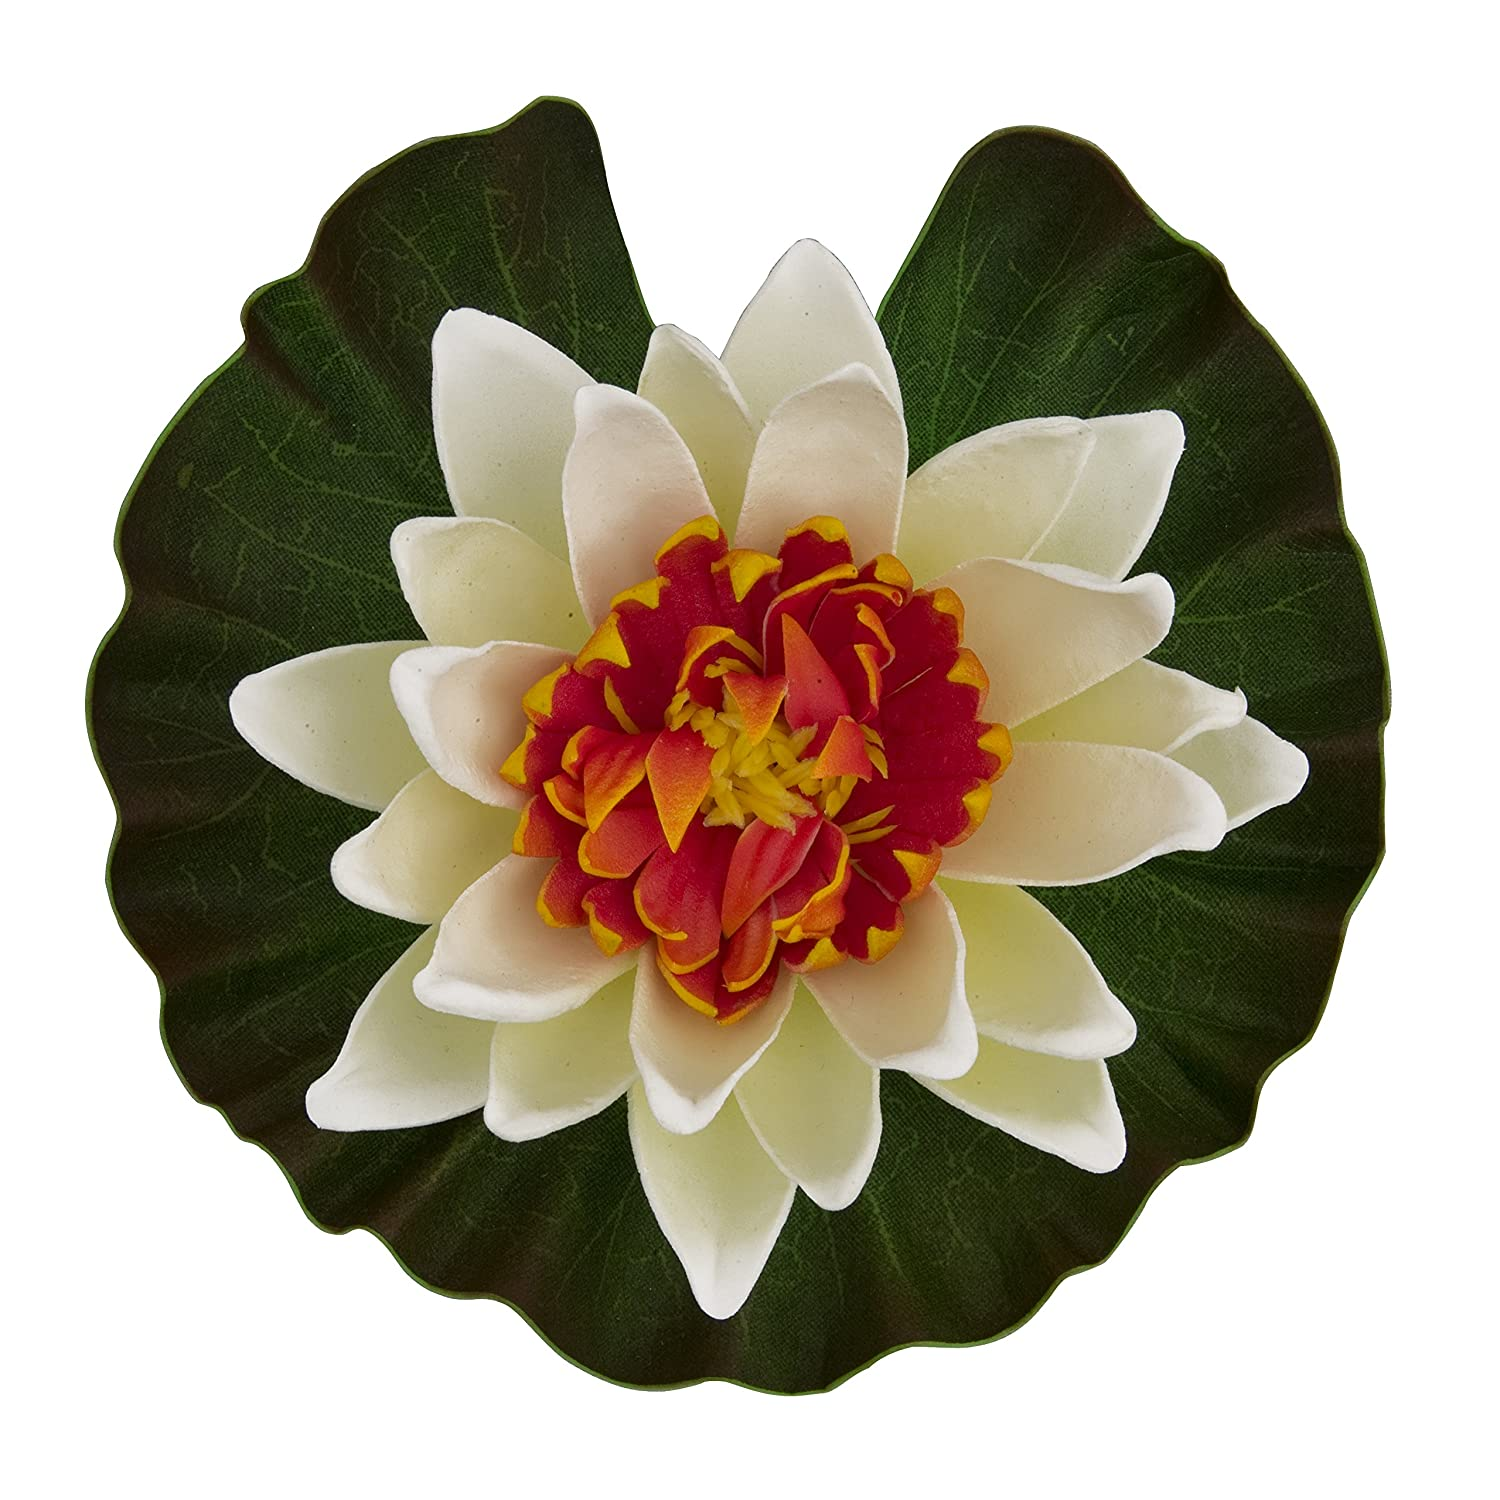 Amazon tetra pond floating water lily colors may vary pet amazon tetra pond floating water lily colors may vary pet supplies izmirmasajfo